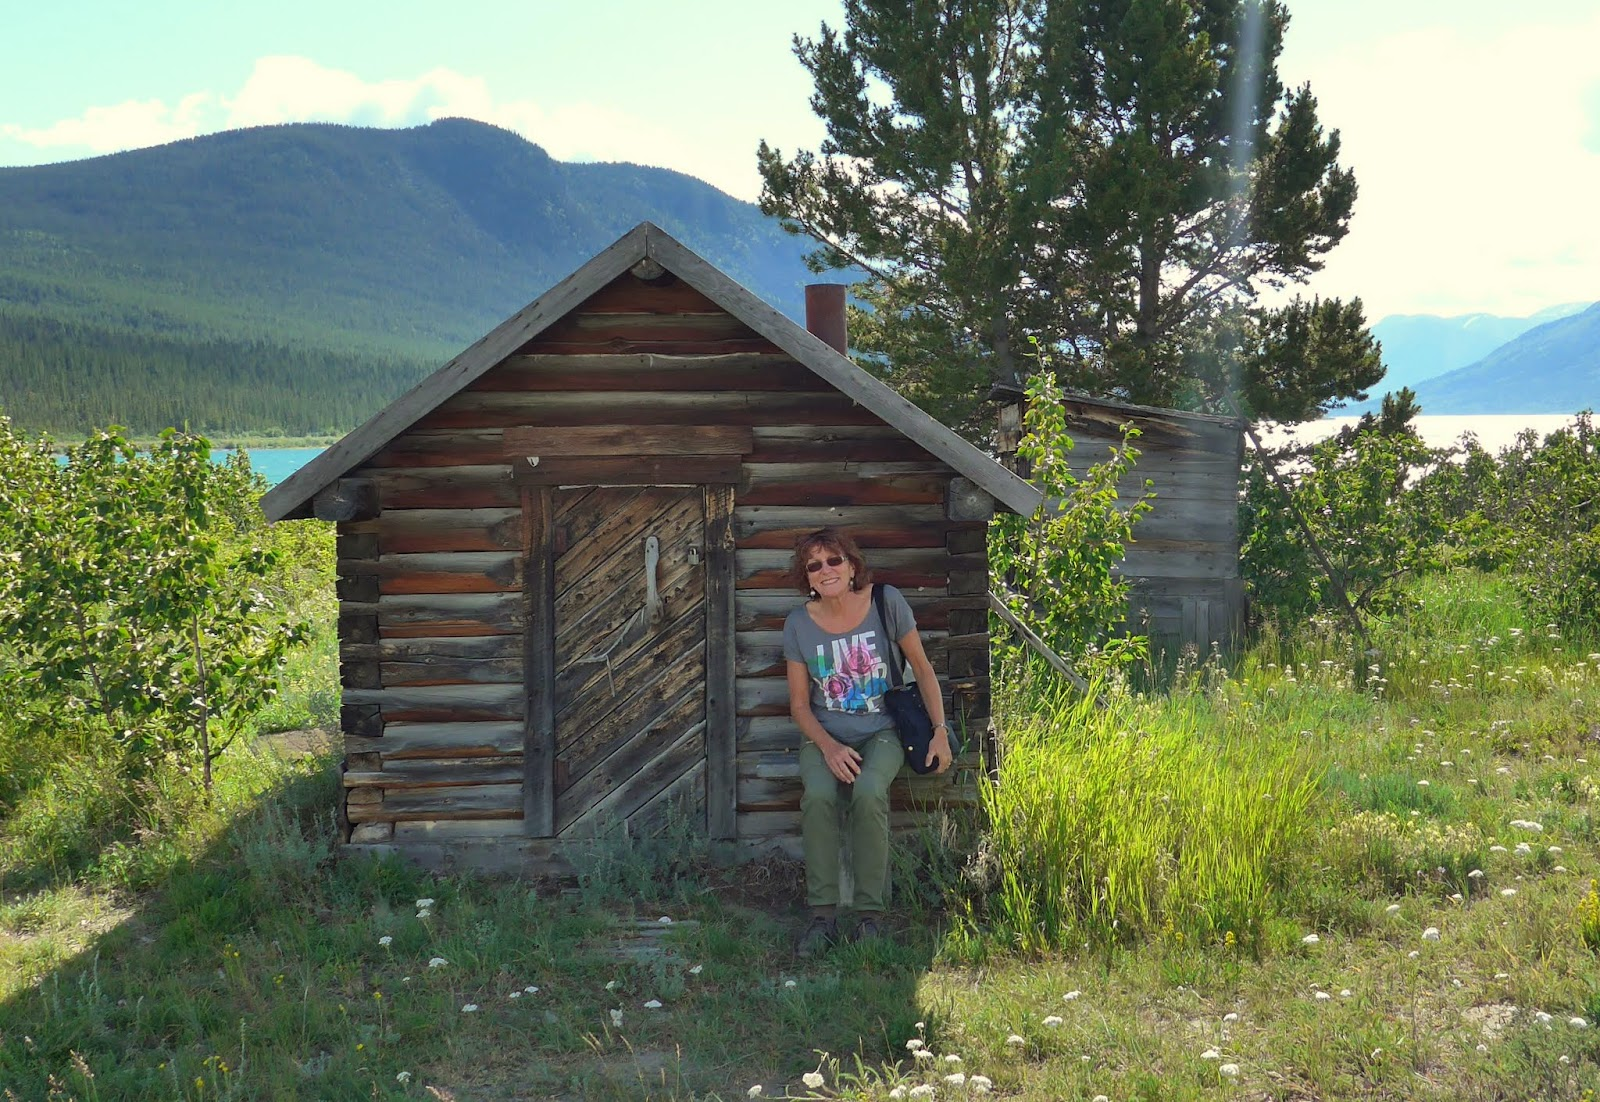 Liz having a rest in front of a storage cabin.